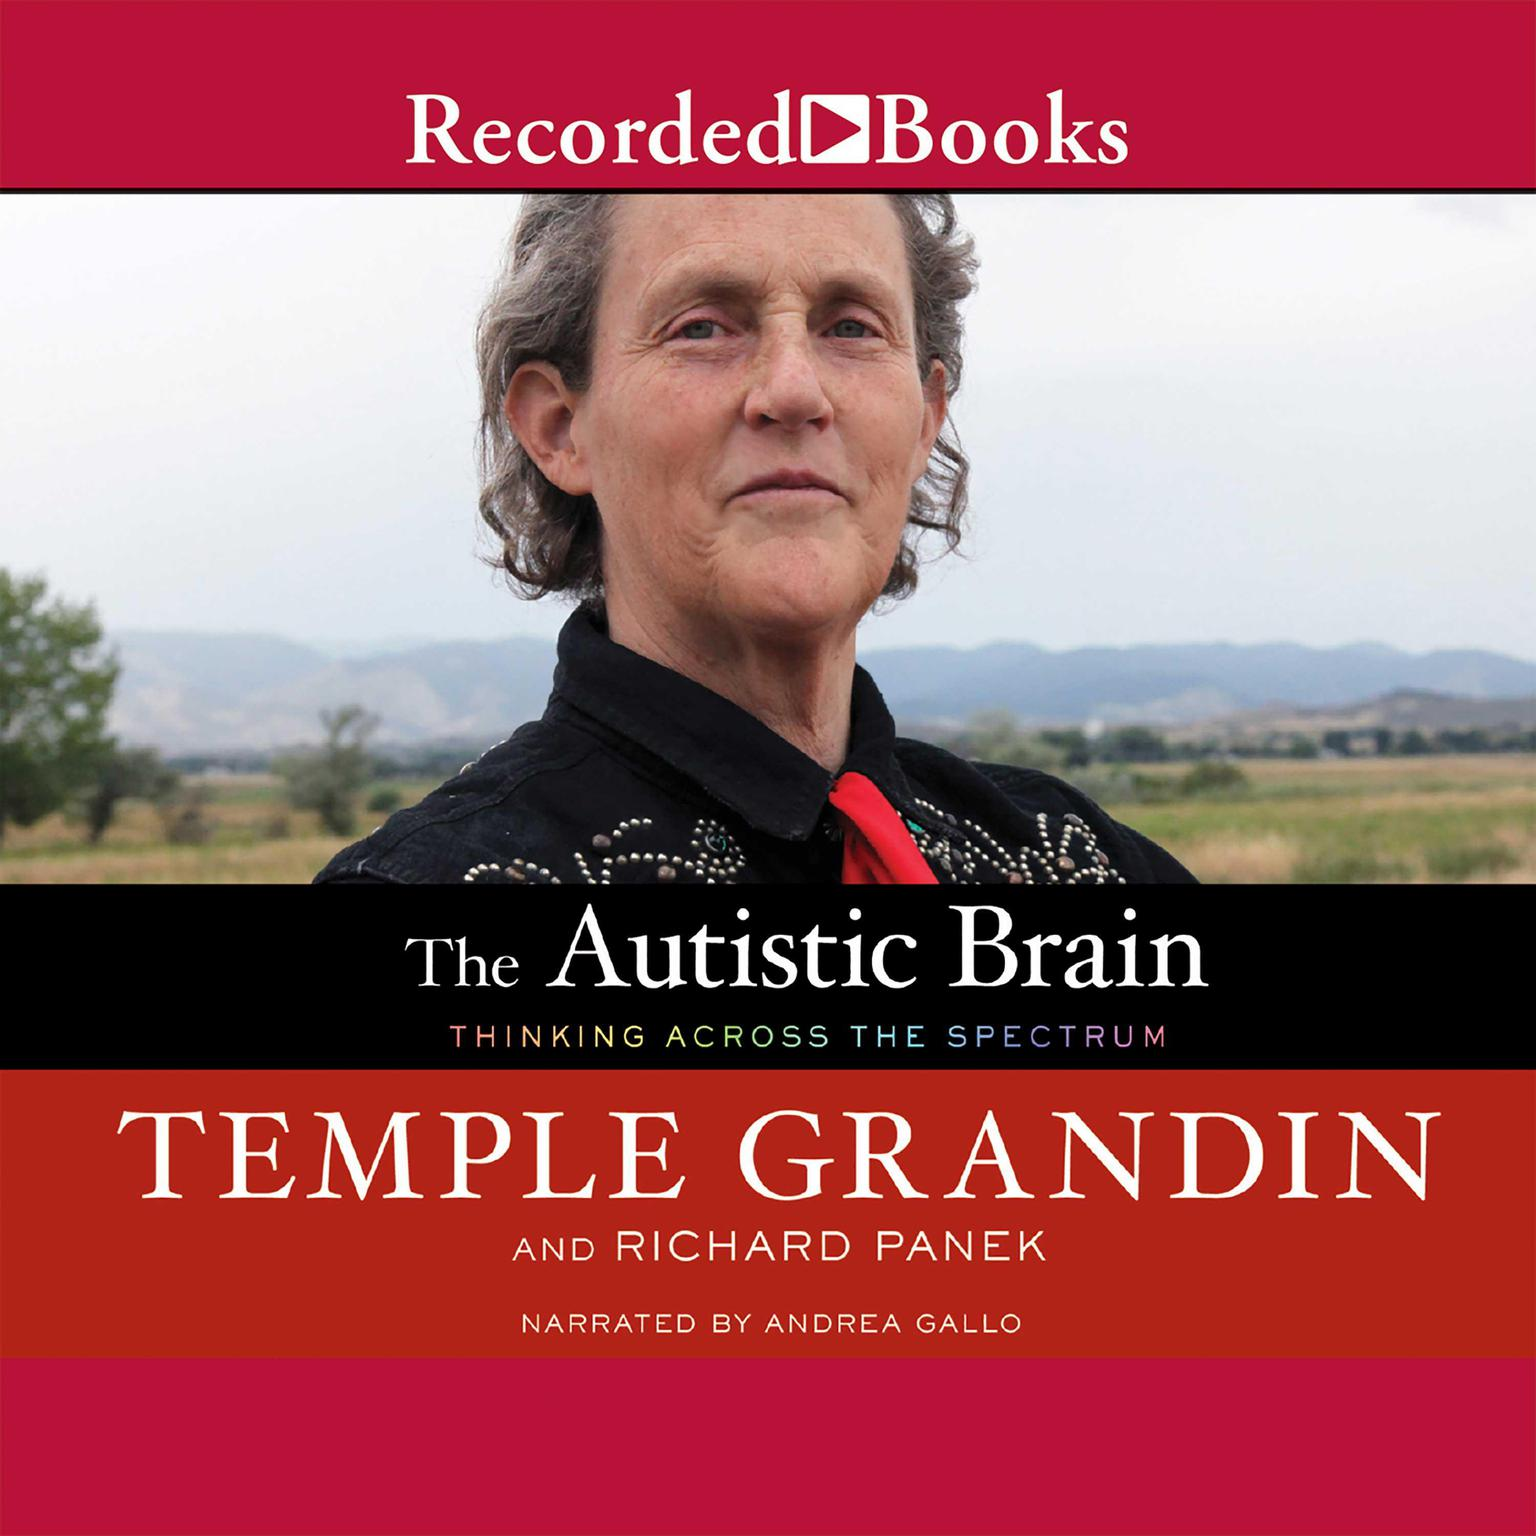 the autistic brain audiobook by temple grandin